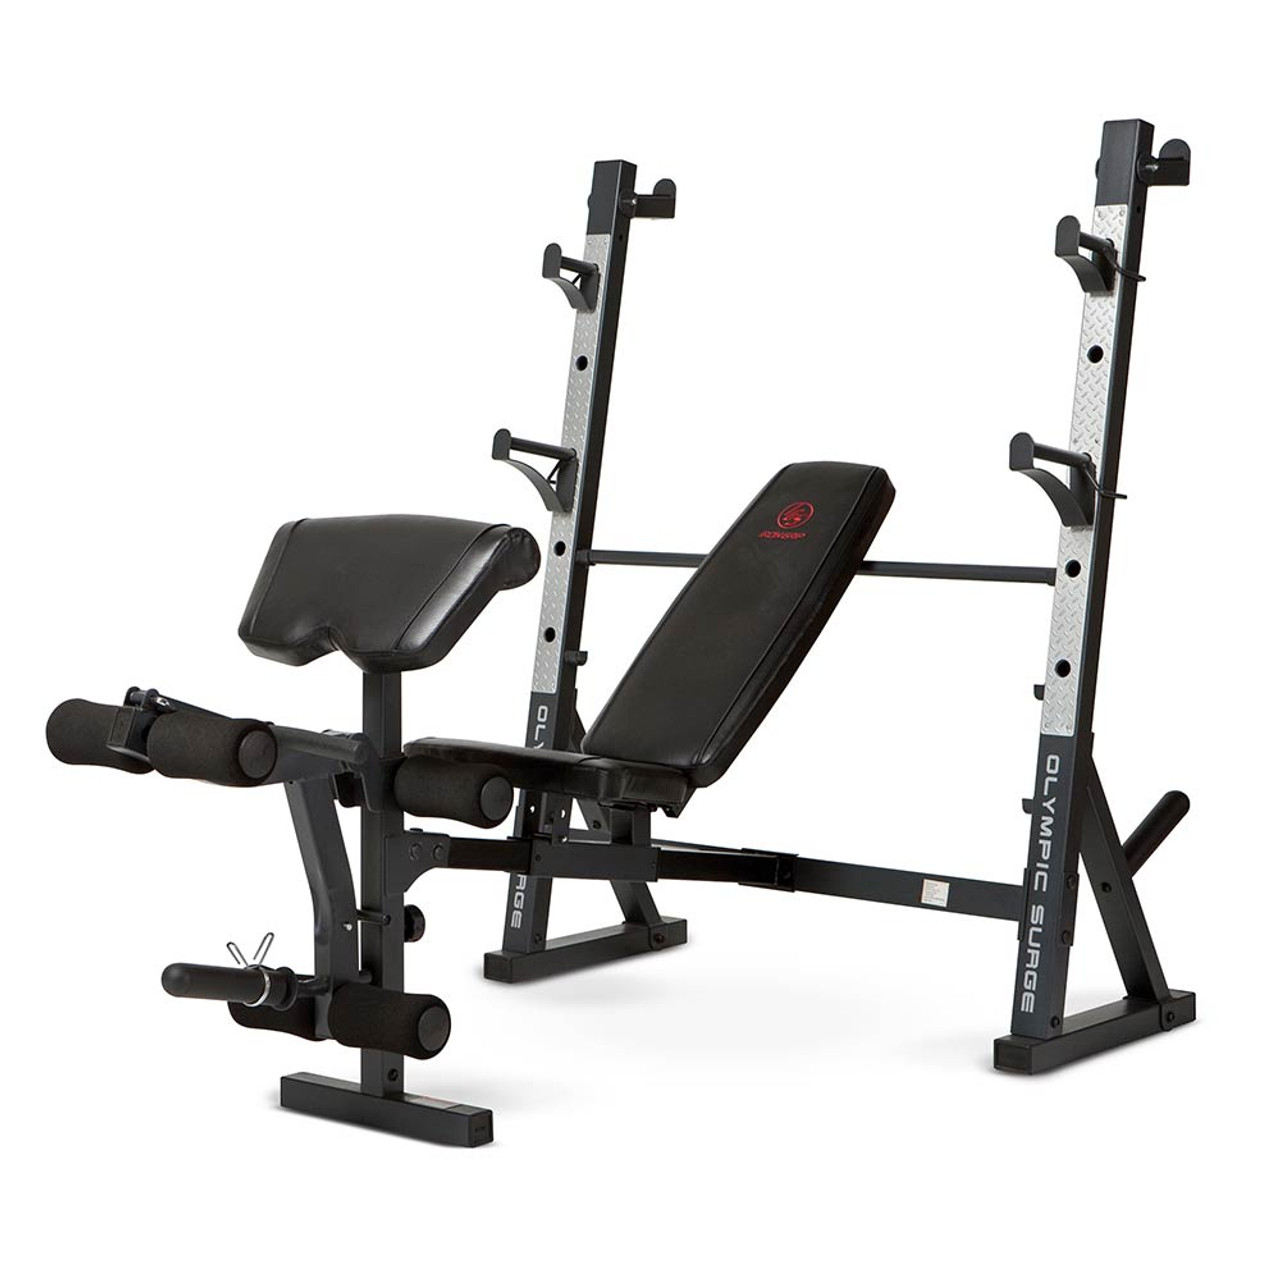 Marcy olympic weight bench md 857 high quality heavy duty strength products Weight bench and weights